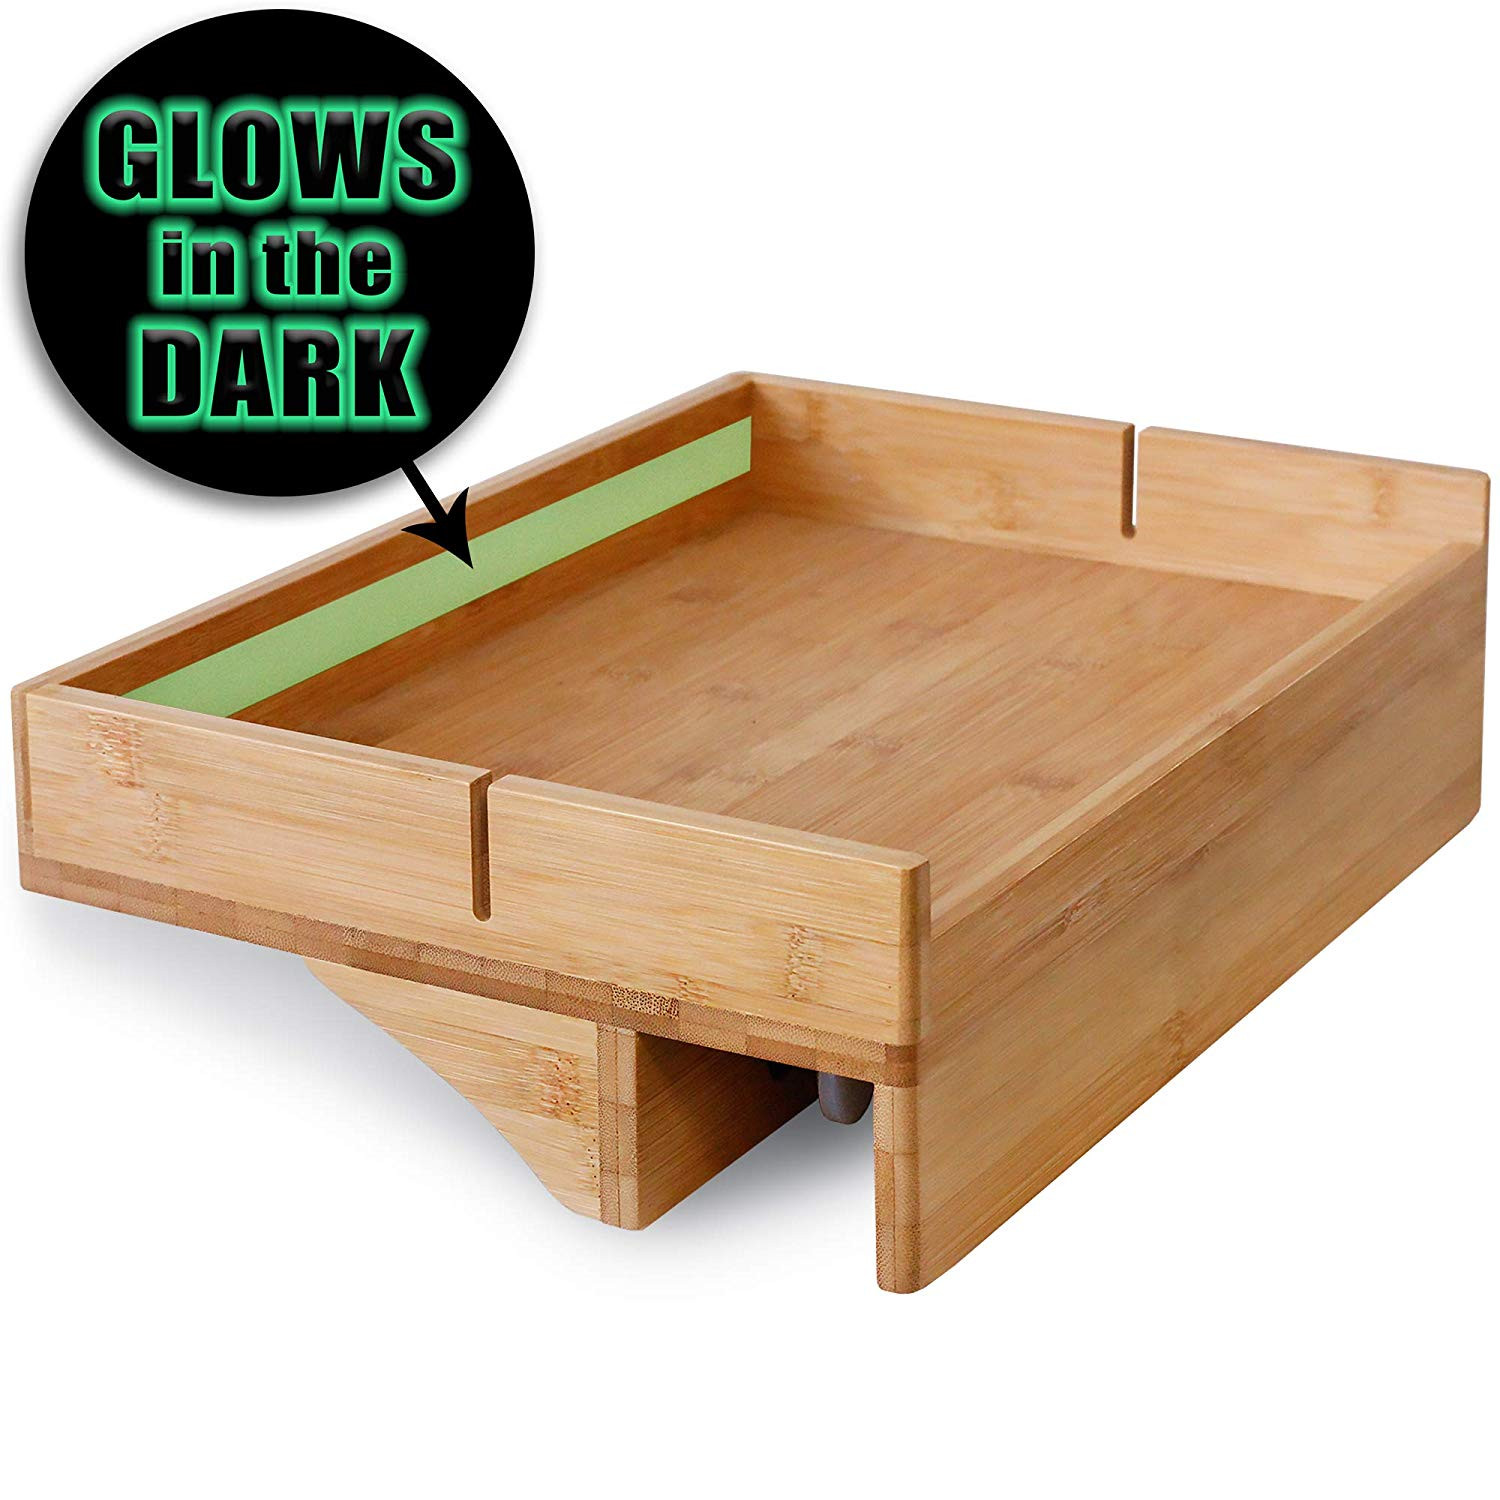 Floating Night Stand With Glow In The Dark Strip